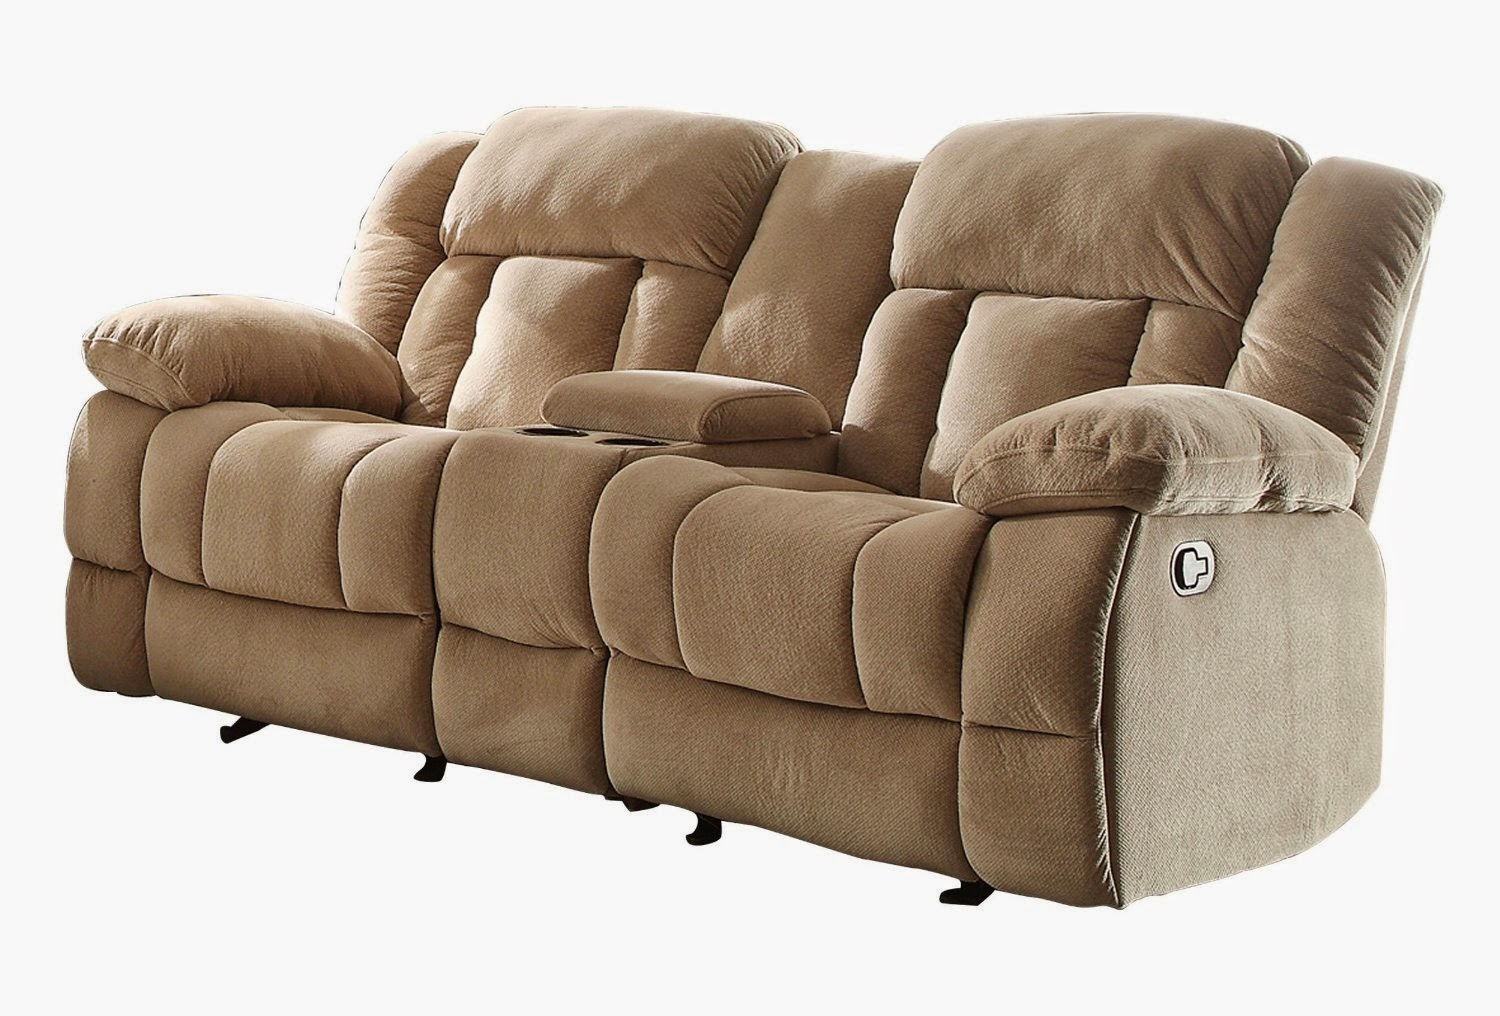 Two Seater Sofa Recliner How To Clean Stitching On White Leather Where Is The Best Place Buy 2 Seat